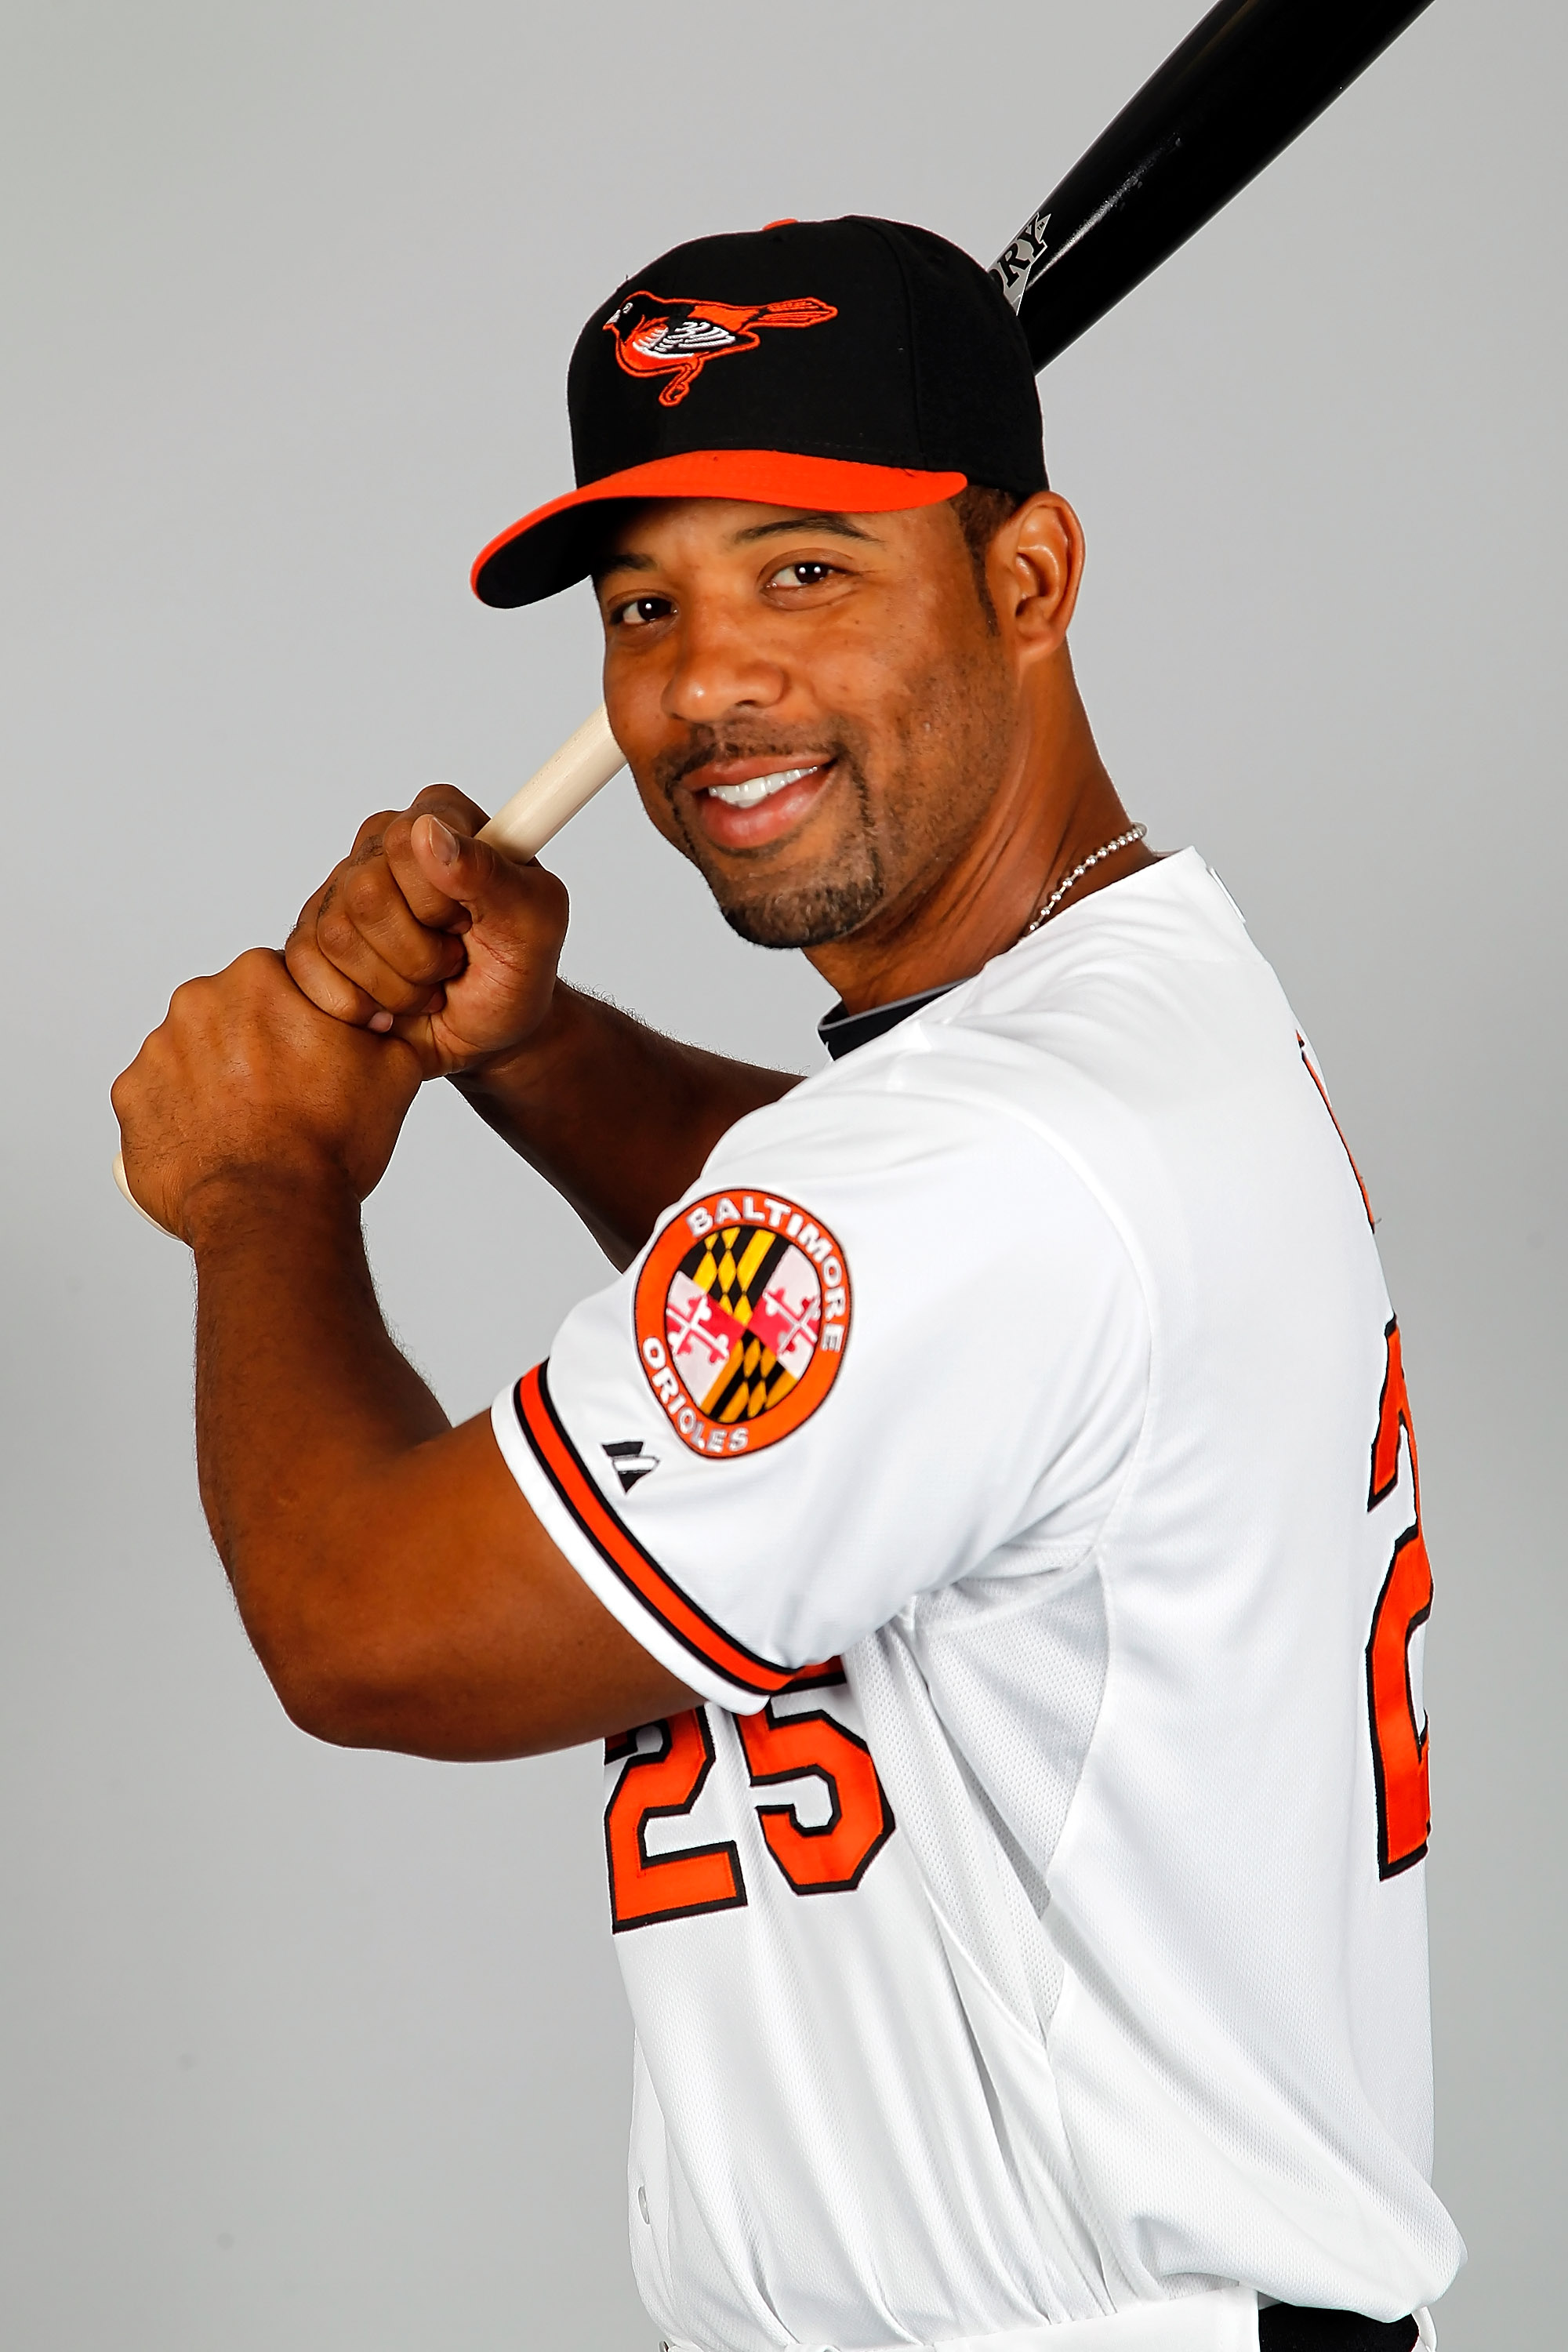 SARASOTA, FL - FEBRUARY 26:  Infielder Derrek Lee #25 of the Baltimore Orioles poses for a photo during photo day at Ed Smith Stadium on February 26, 2011 in Sarasota, Florida.  (Photo by J. Meric/Getty Images)